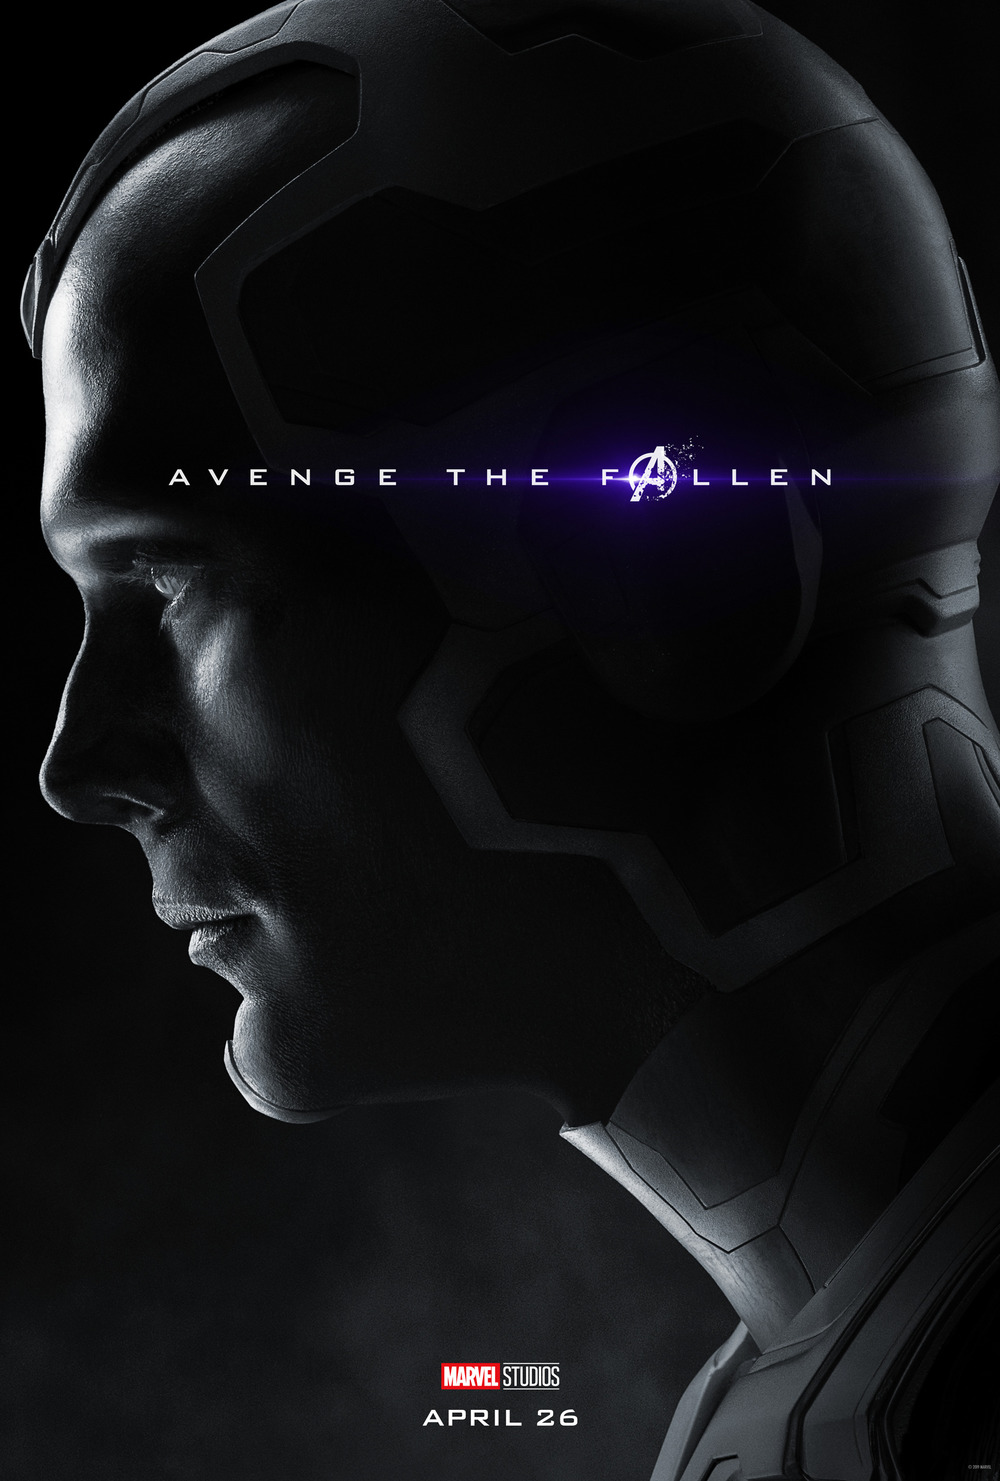 Avengers Endgame Movie Poster Amazon